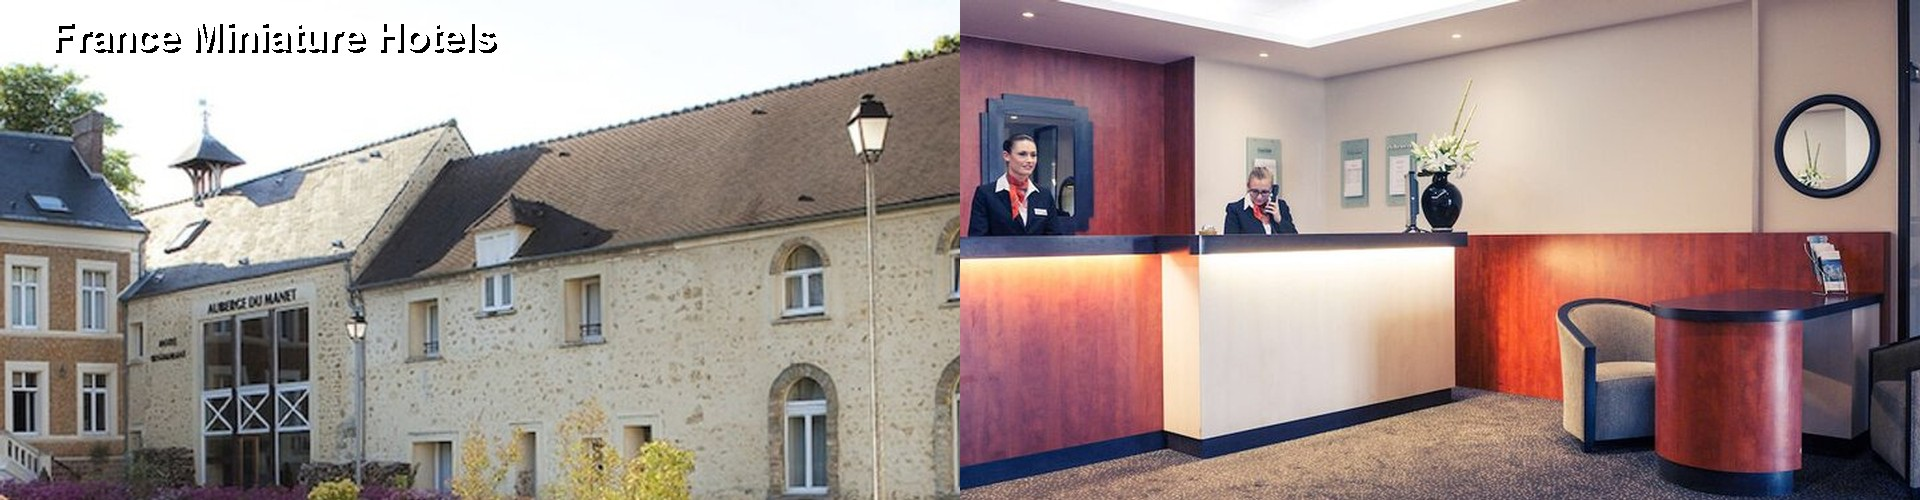 2 Best Hotels near France Miniature